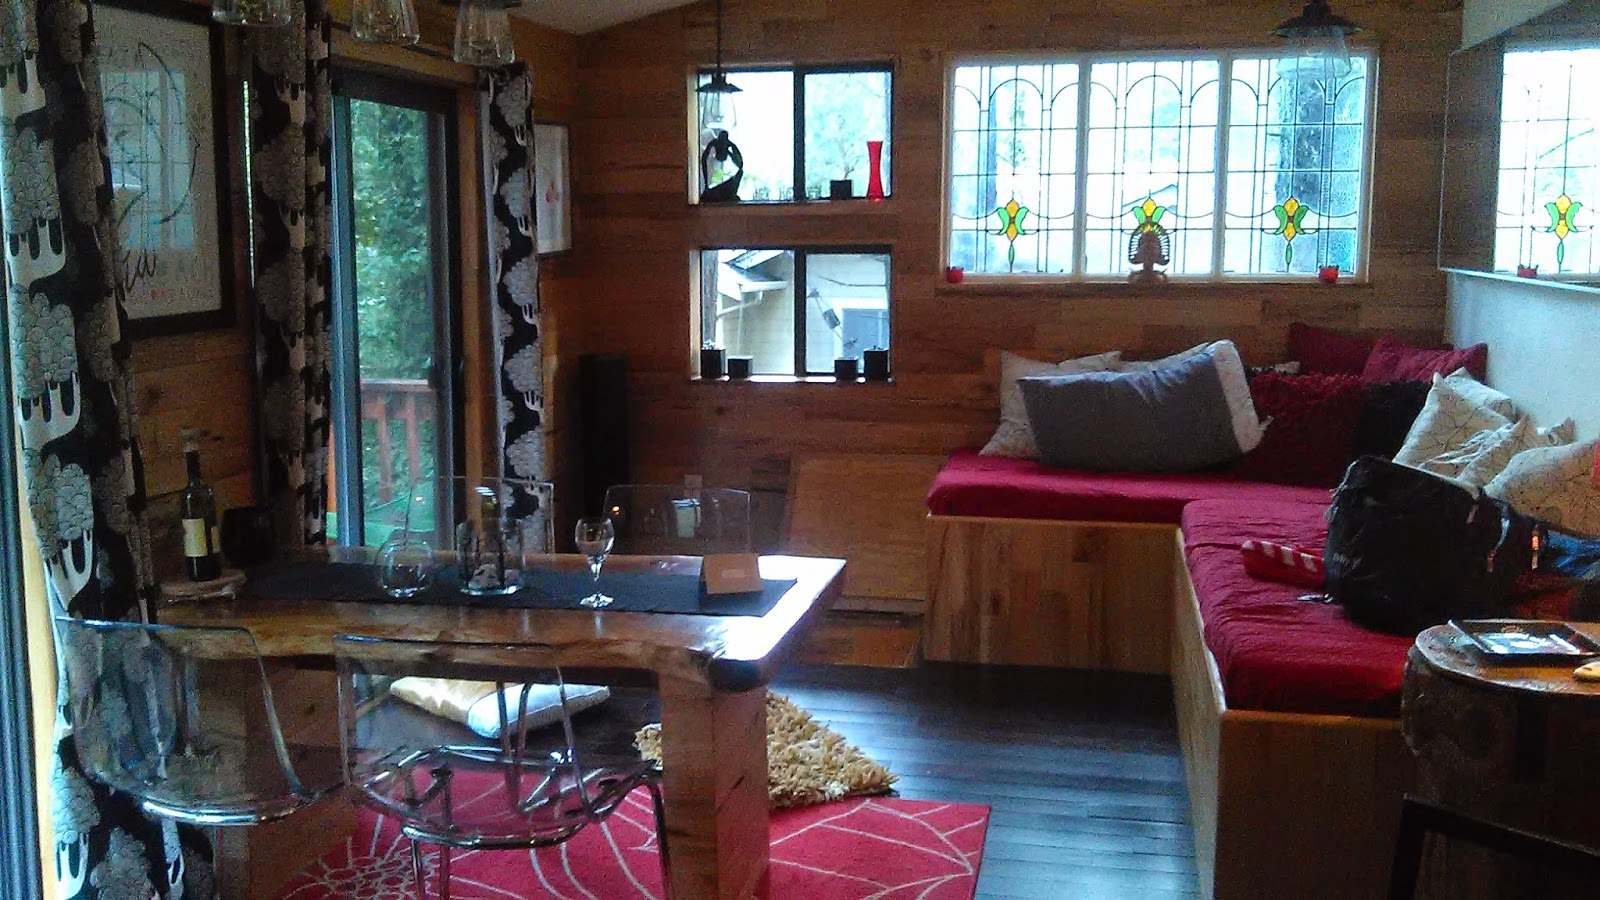 Middletown CA Mini Vacation Getaway Cabin Living Mahogany Closet Lifestyle Fashion Style Blog